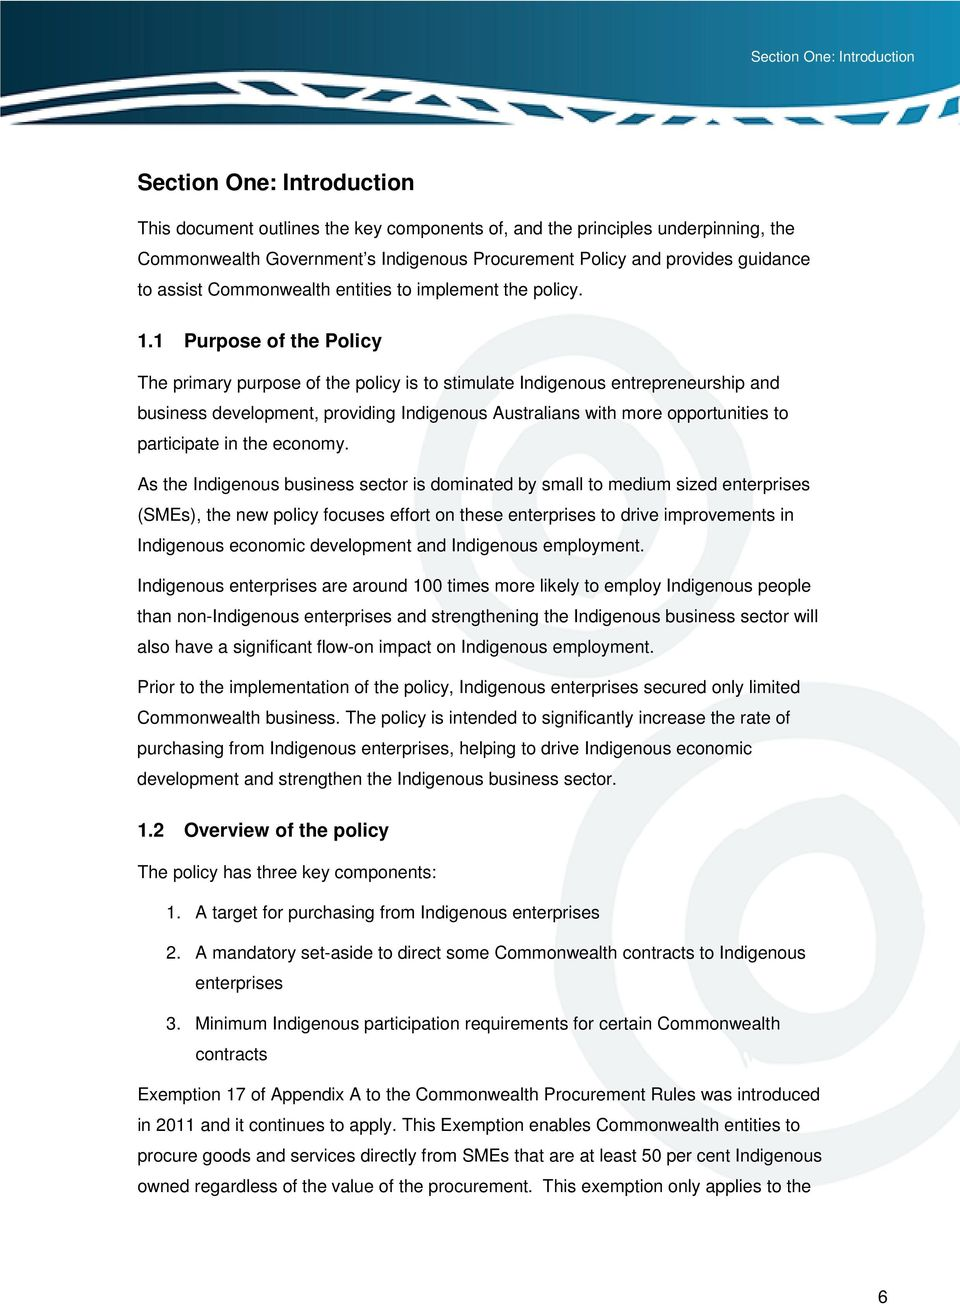 1 Purpose of the Policy The primary purpose of the policy is to stimulate Indigenous entrepreneurship and business development, providing Indigenous Australians with more opportunities to participate